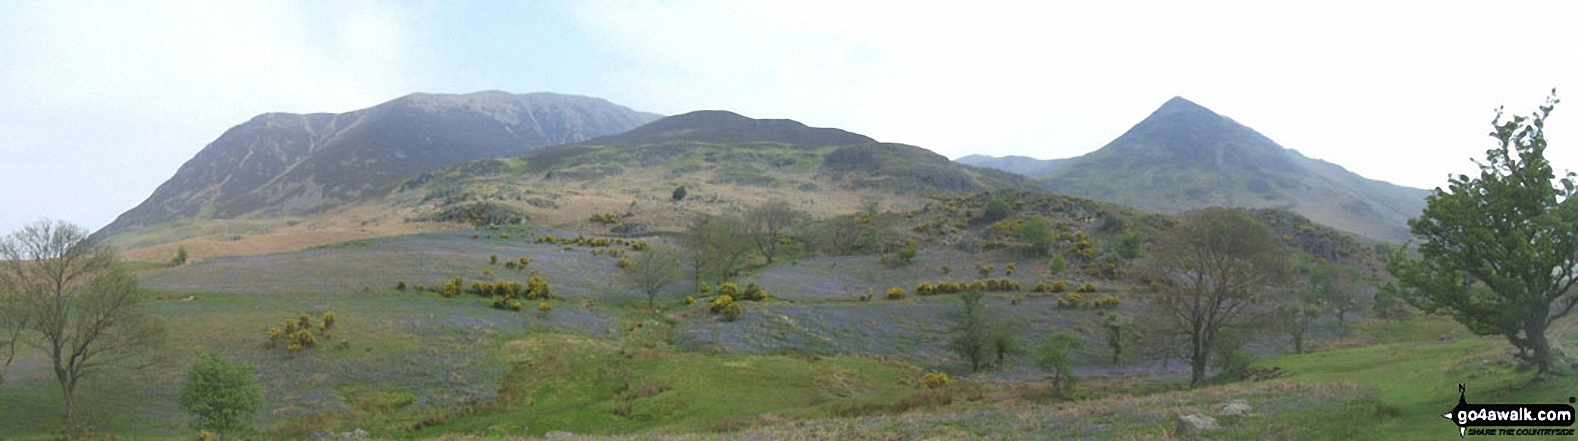 Walk c196 Grasmoor and Rannerdale Knotts from Lanthwaite Green - *Bluebells with Grasmoor, Las Hows and Whiteless Pike from Rannerdale